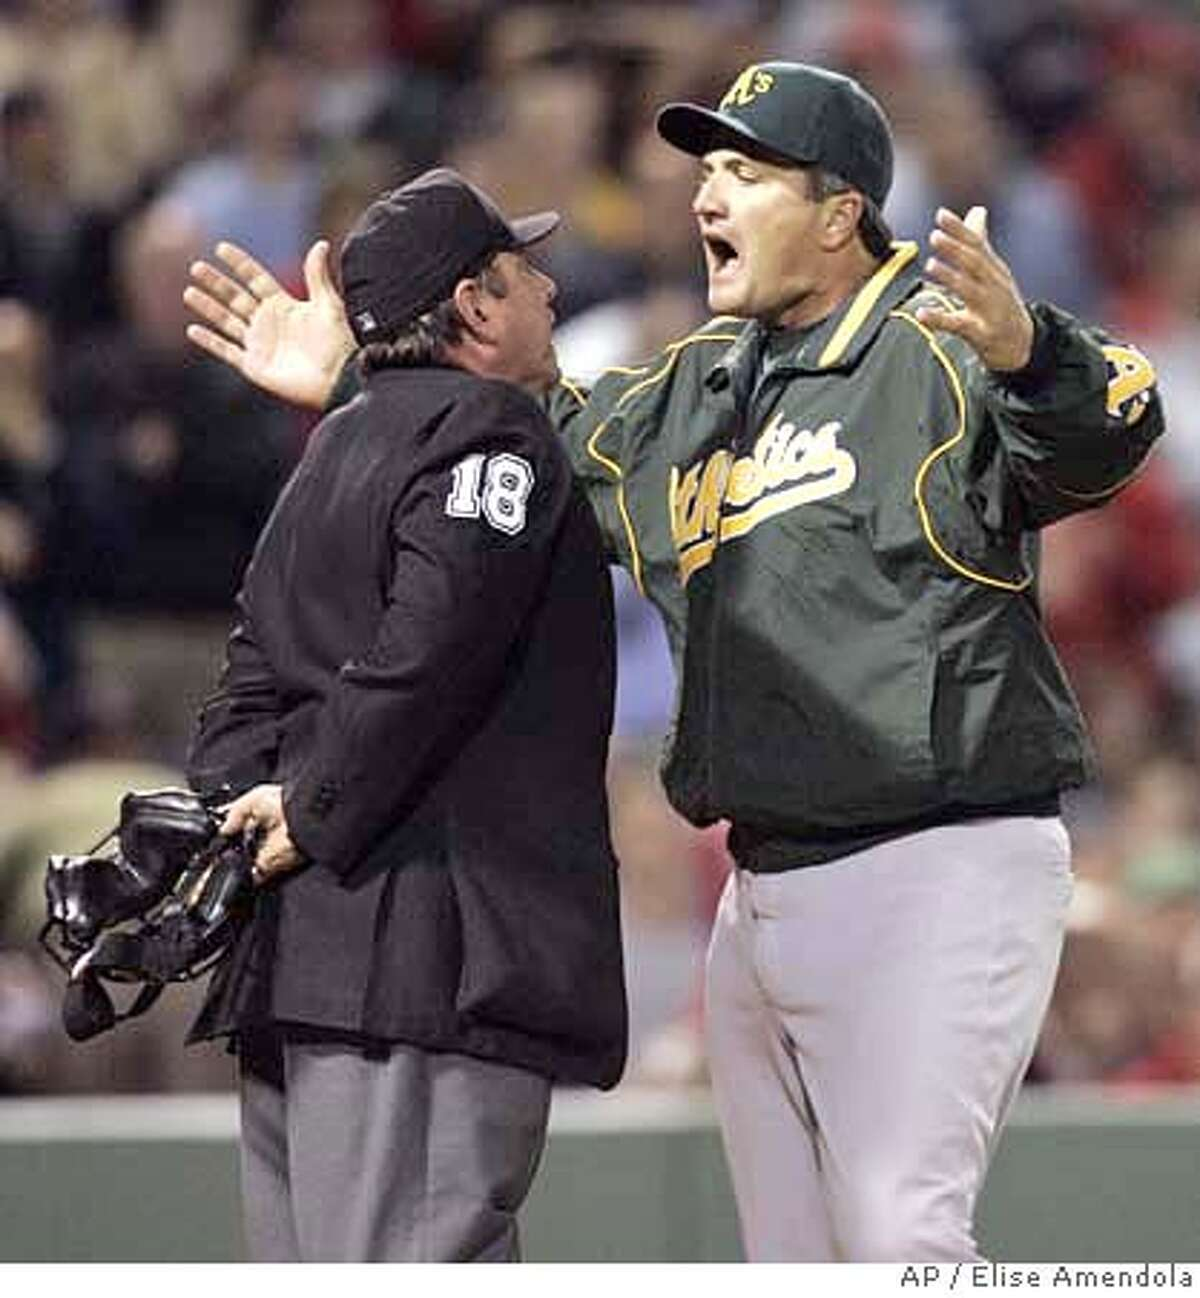 Oakland Athletics manager Bob Geren, right, argues with home plate umpire Charlie Reliford after Eric Chavez struck out to end the fifth inning of their baseball game against the Boston Red Sox at Fenway Park in Boston Tuesday, May 1, 2007. (AP Photo/Elise Amendola)